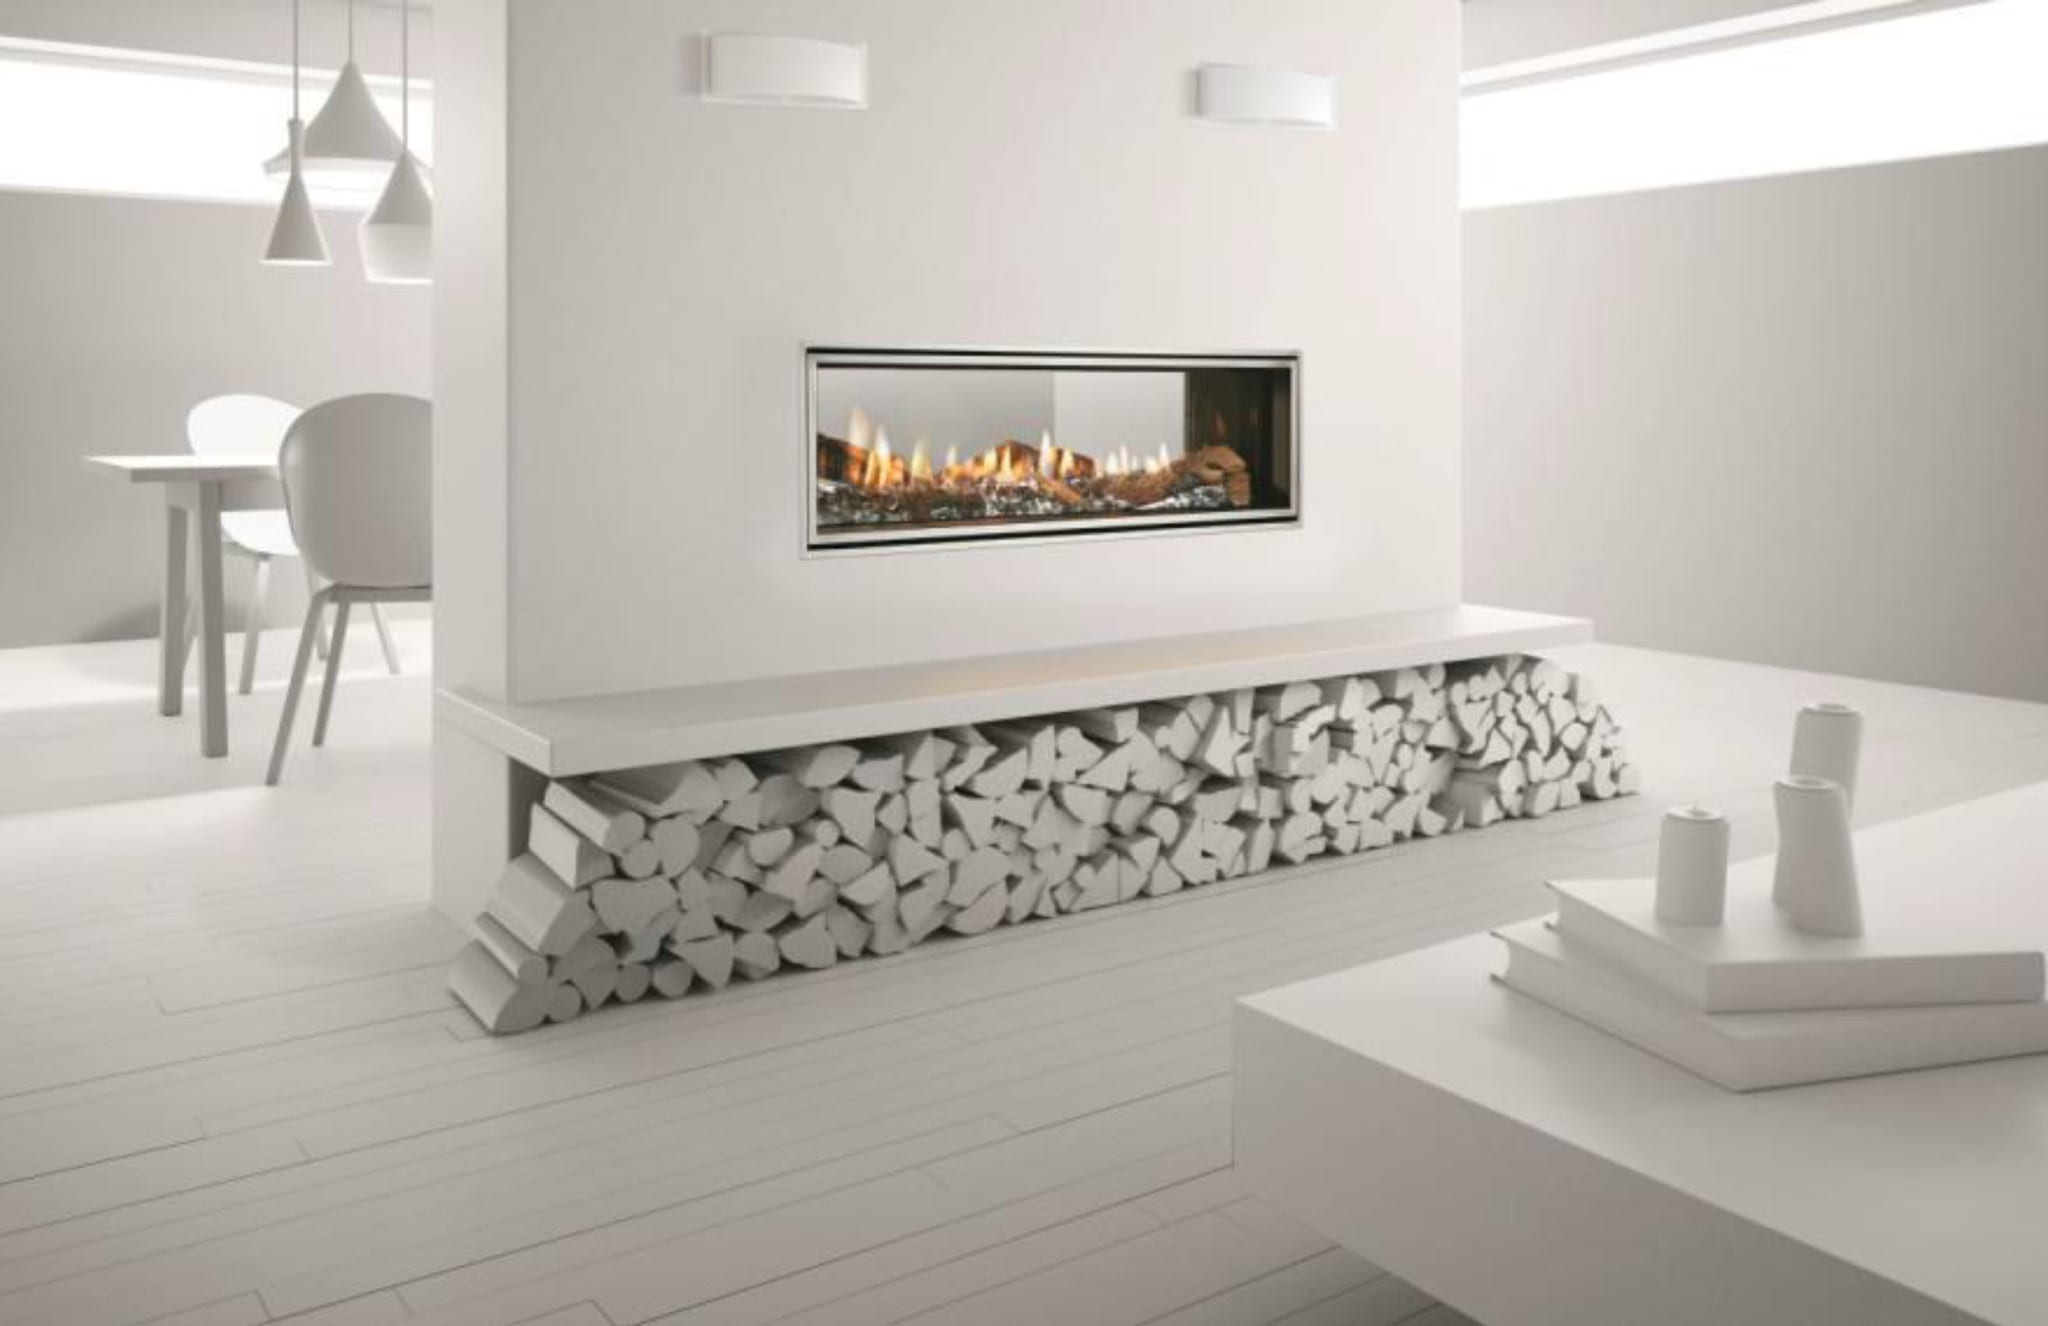 Heat & Glo Mezzo 1300ST See-Through Gas Fireplace Duplex Double Sided Gas Fire showroom Turfrey Palmerston North & Hamilton. Architectural gas fire NZ.